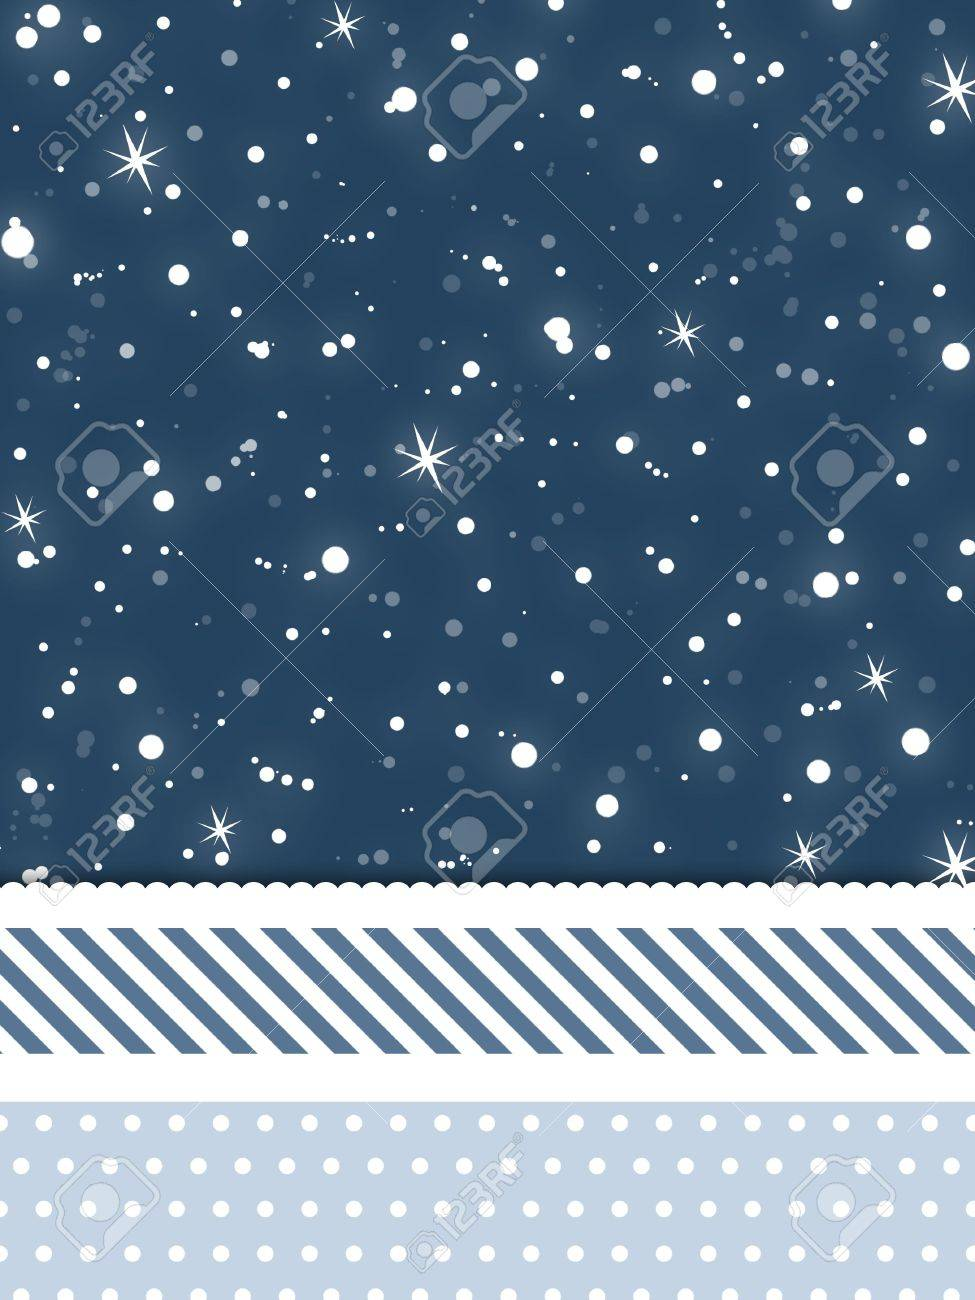 A snowflake and stars winter background for use in website wallpaper designs presentations christmas cards invitations and holiday-themed brochure backgrounds. Stock Photo - 3709921